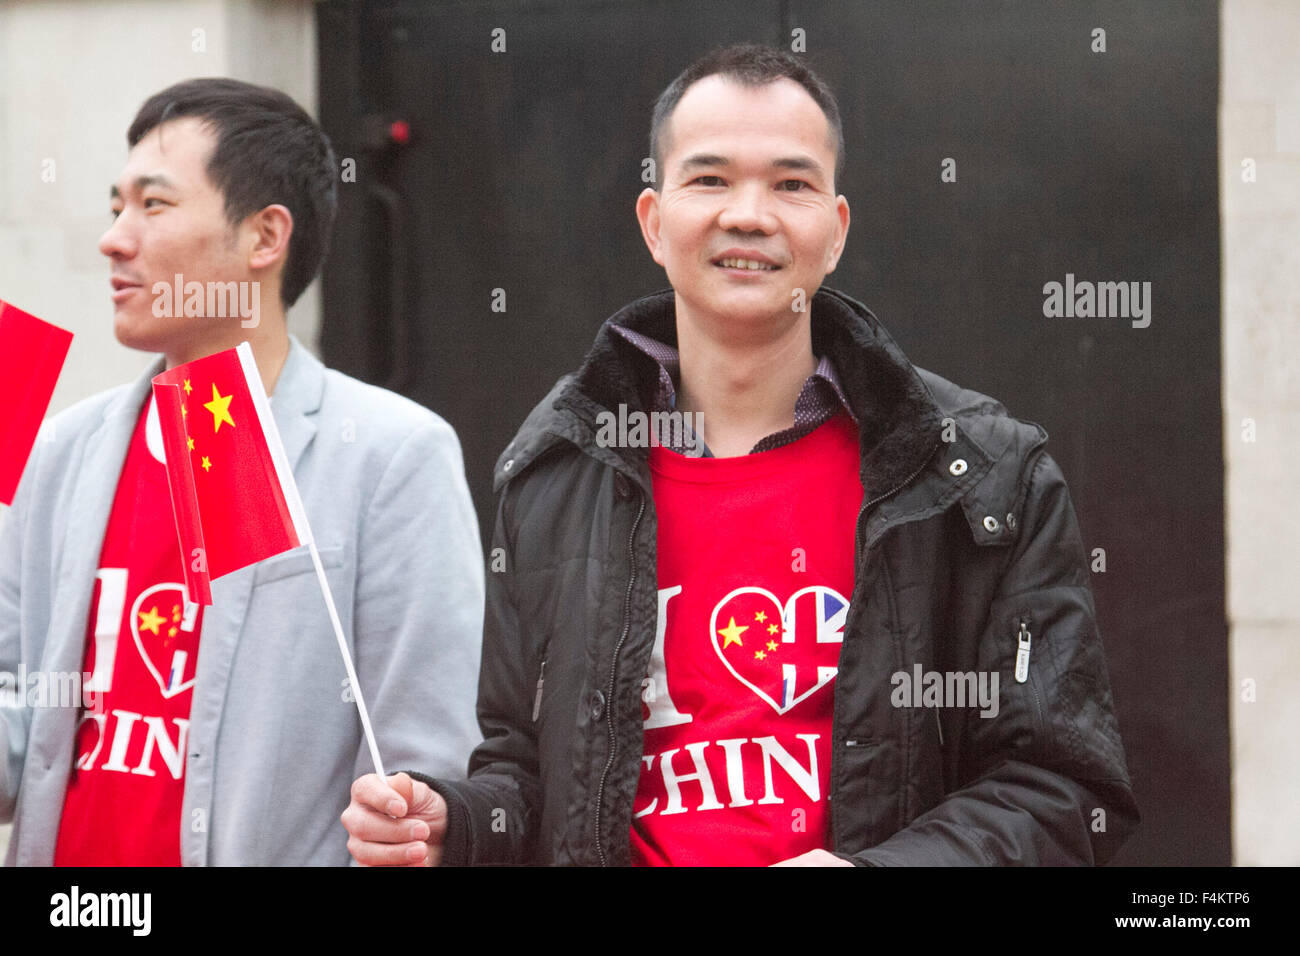 London UK. 20th October 2015. Supporters of Chinese President Xi Jinping with banners and flags outside Horse Guards - Stock Image